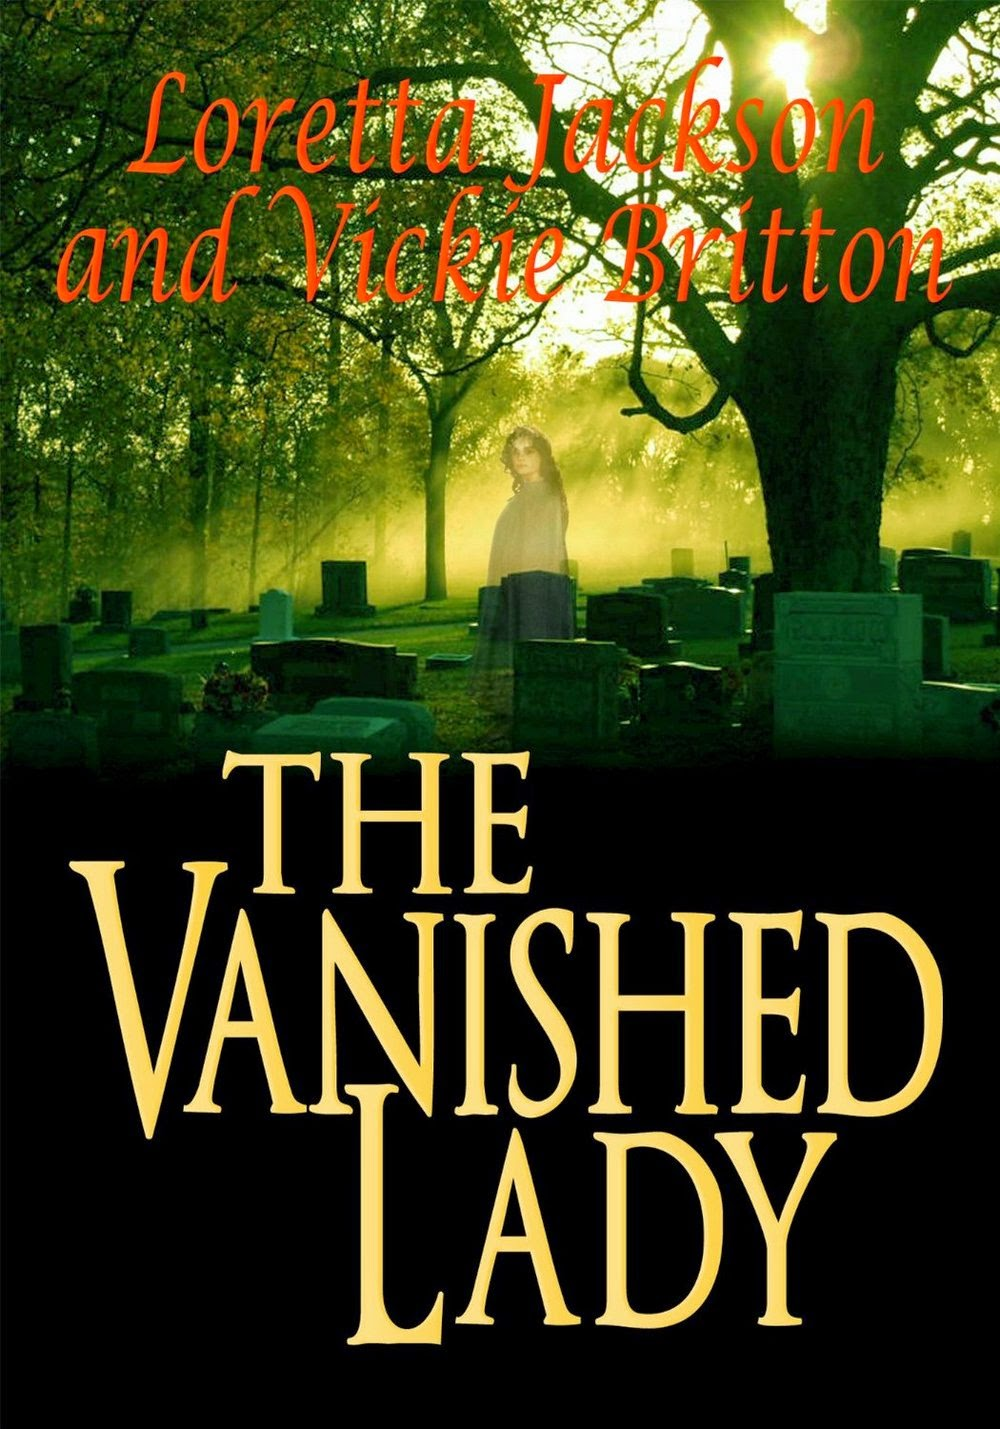 THE VANISHED LADY--OUR BESTSELLING MYSTERY/SUSPENSE